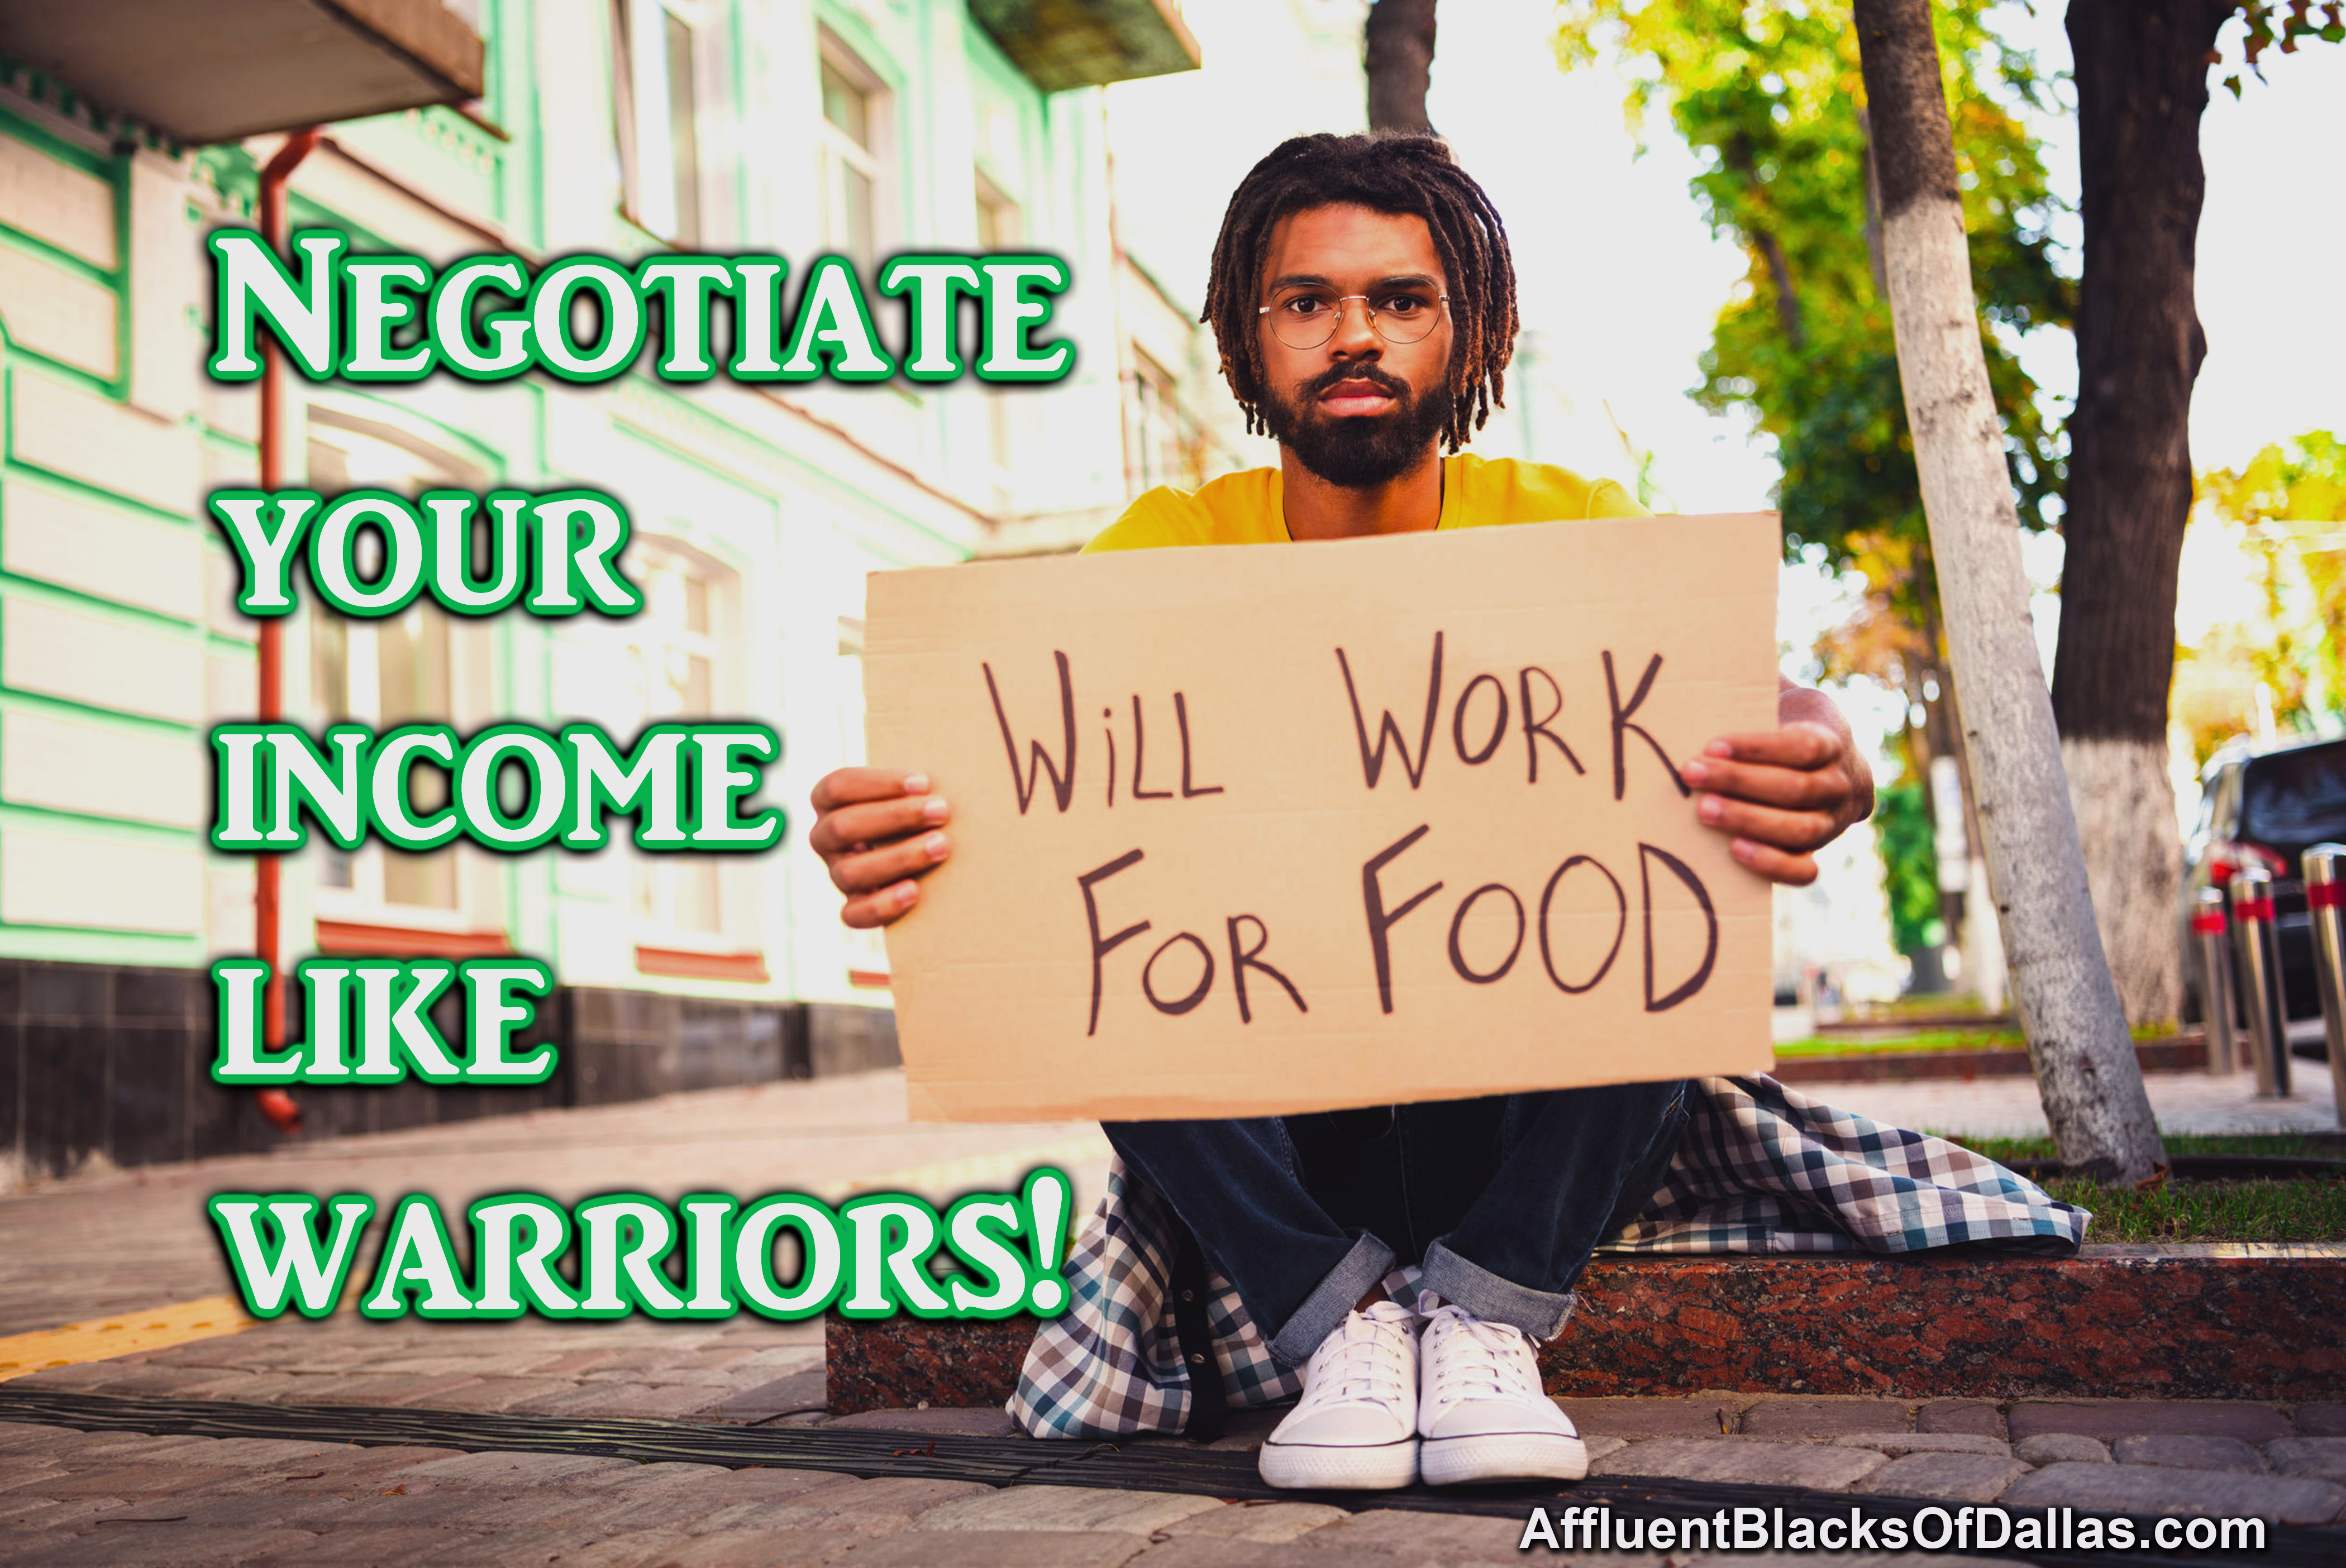 Why end up in STRUGGLE careers and LOW INCOME businesses?